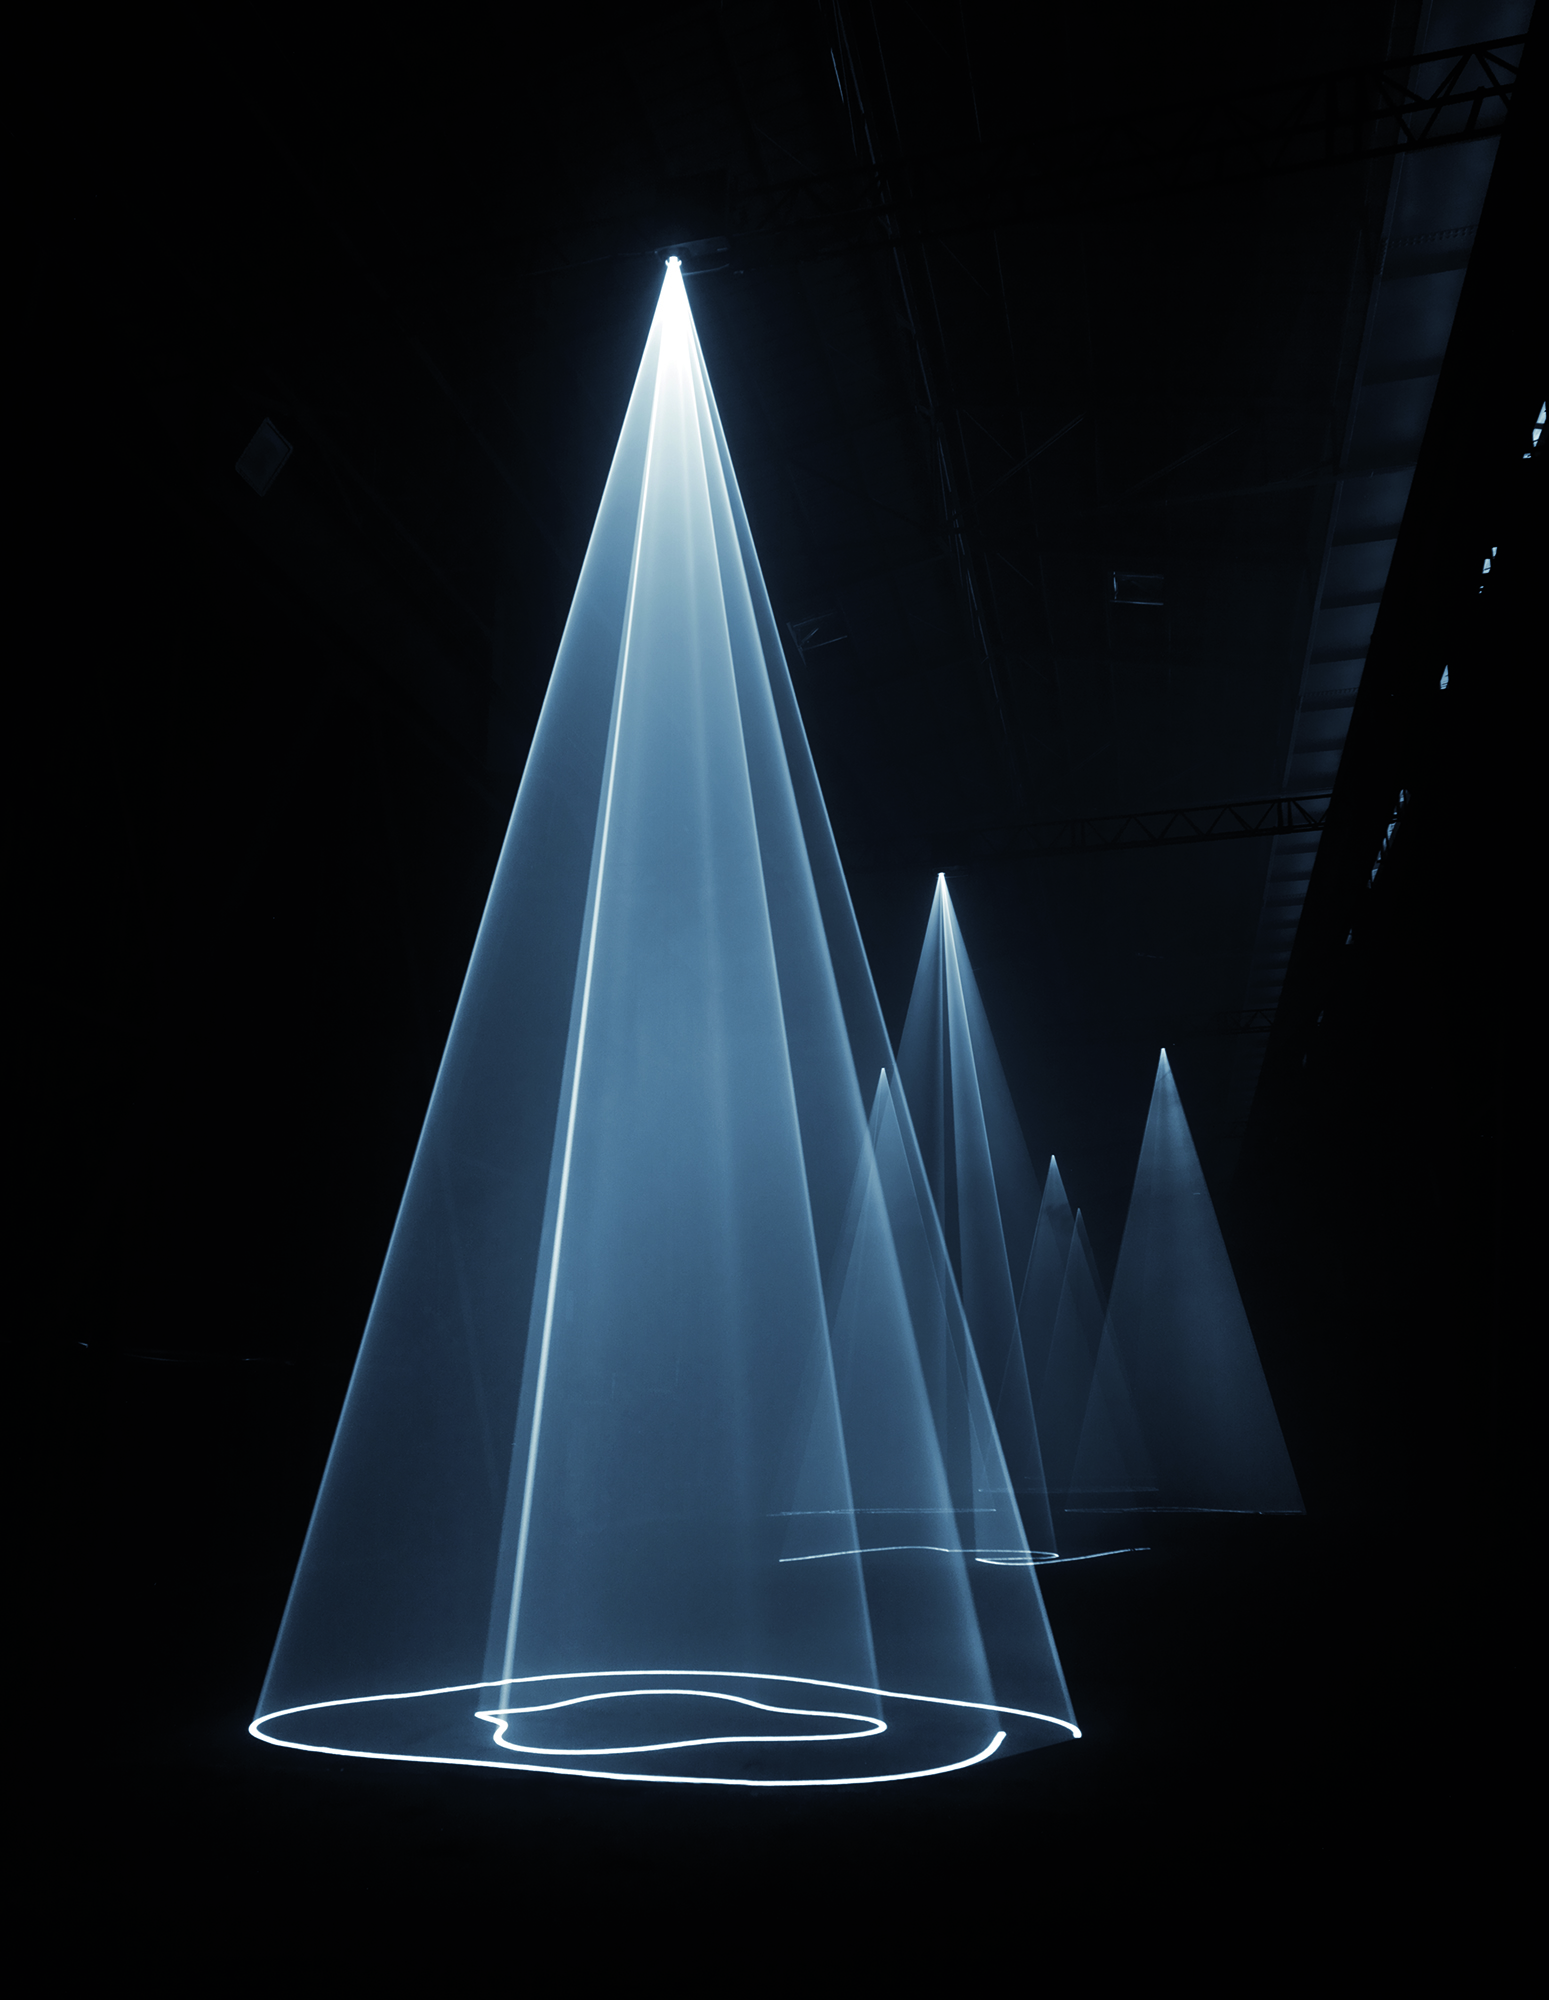 Anthony McCall. Installation view at Hangar Bicocca, Milan (2009). Photo: Giulio Buono. Courtesy Sean Kelly Gallery, New York; Galerie Thomas Zander, Cologne; Martine Aboucaya, Paris.